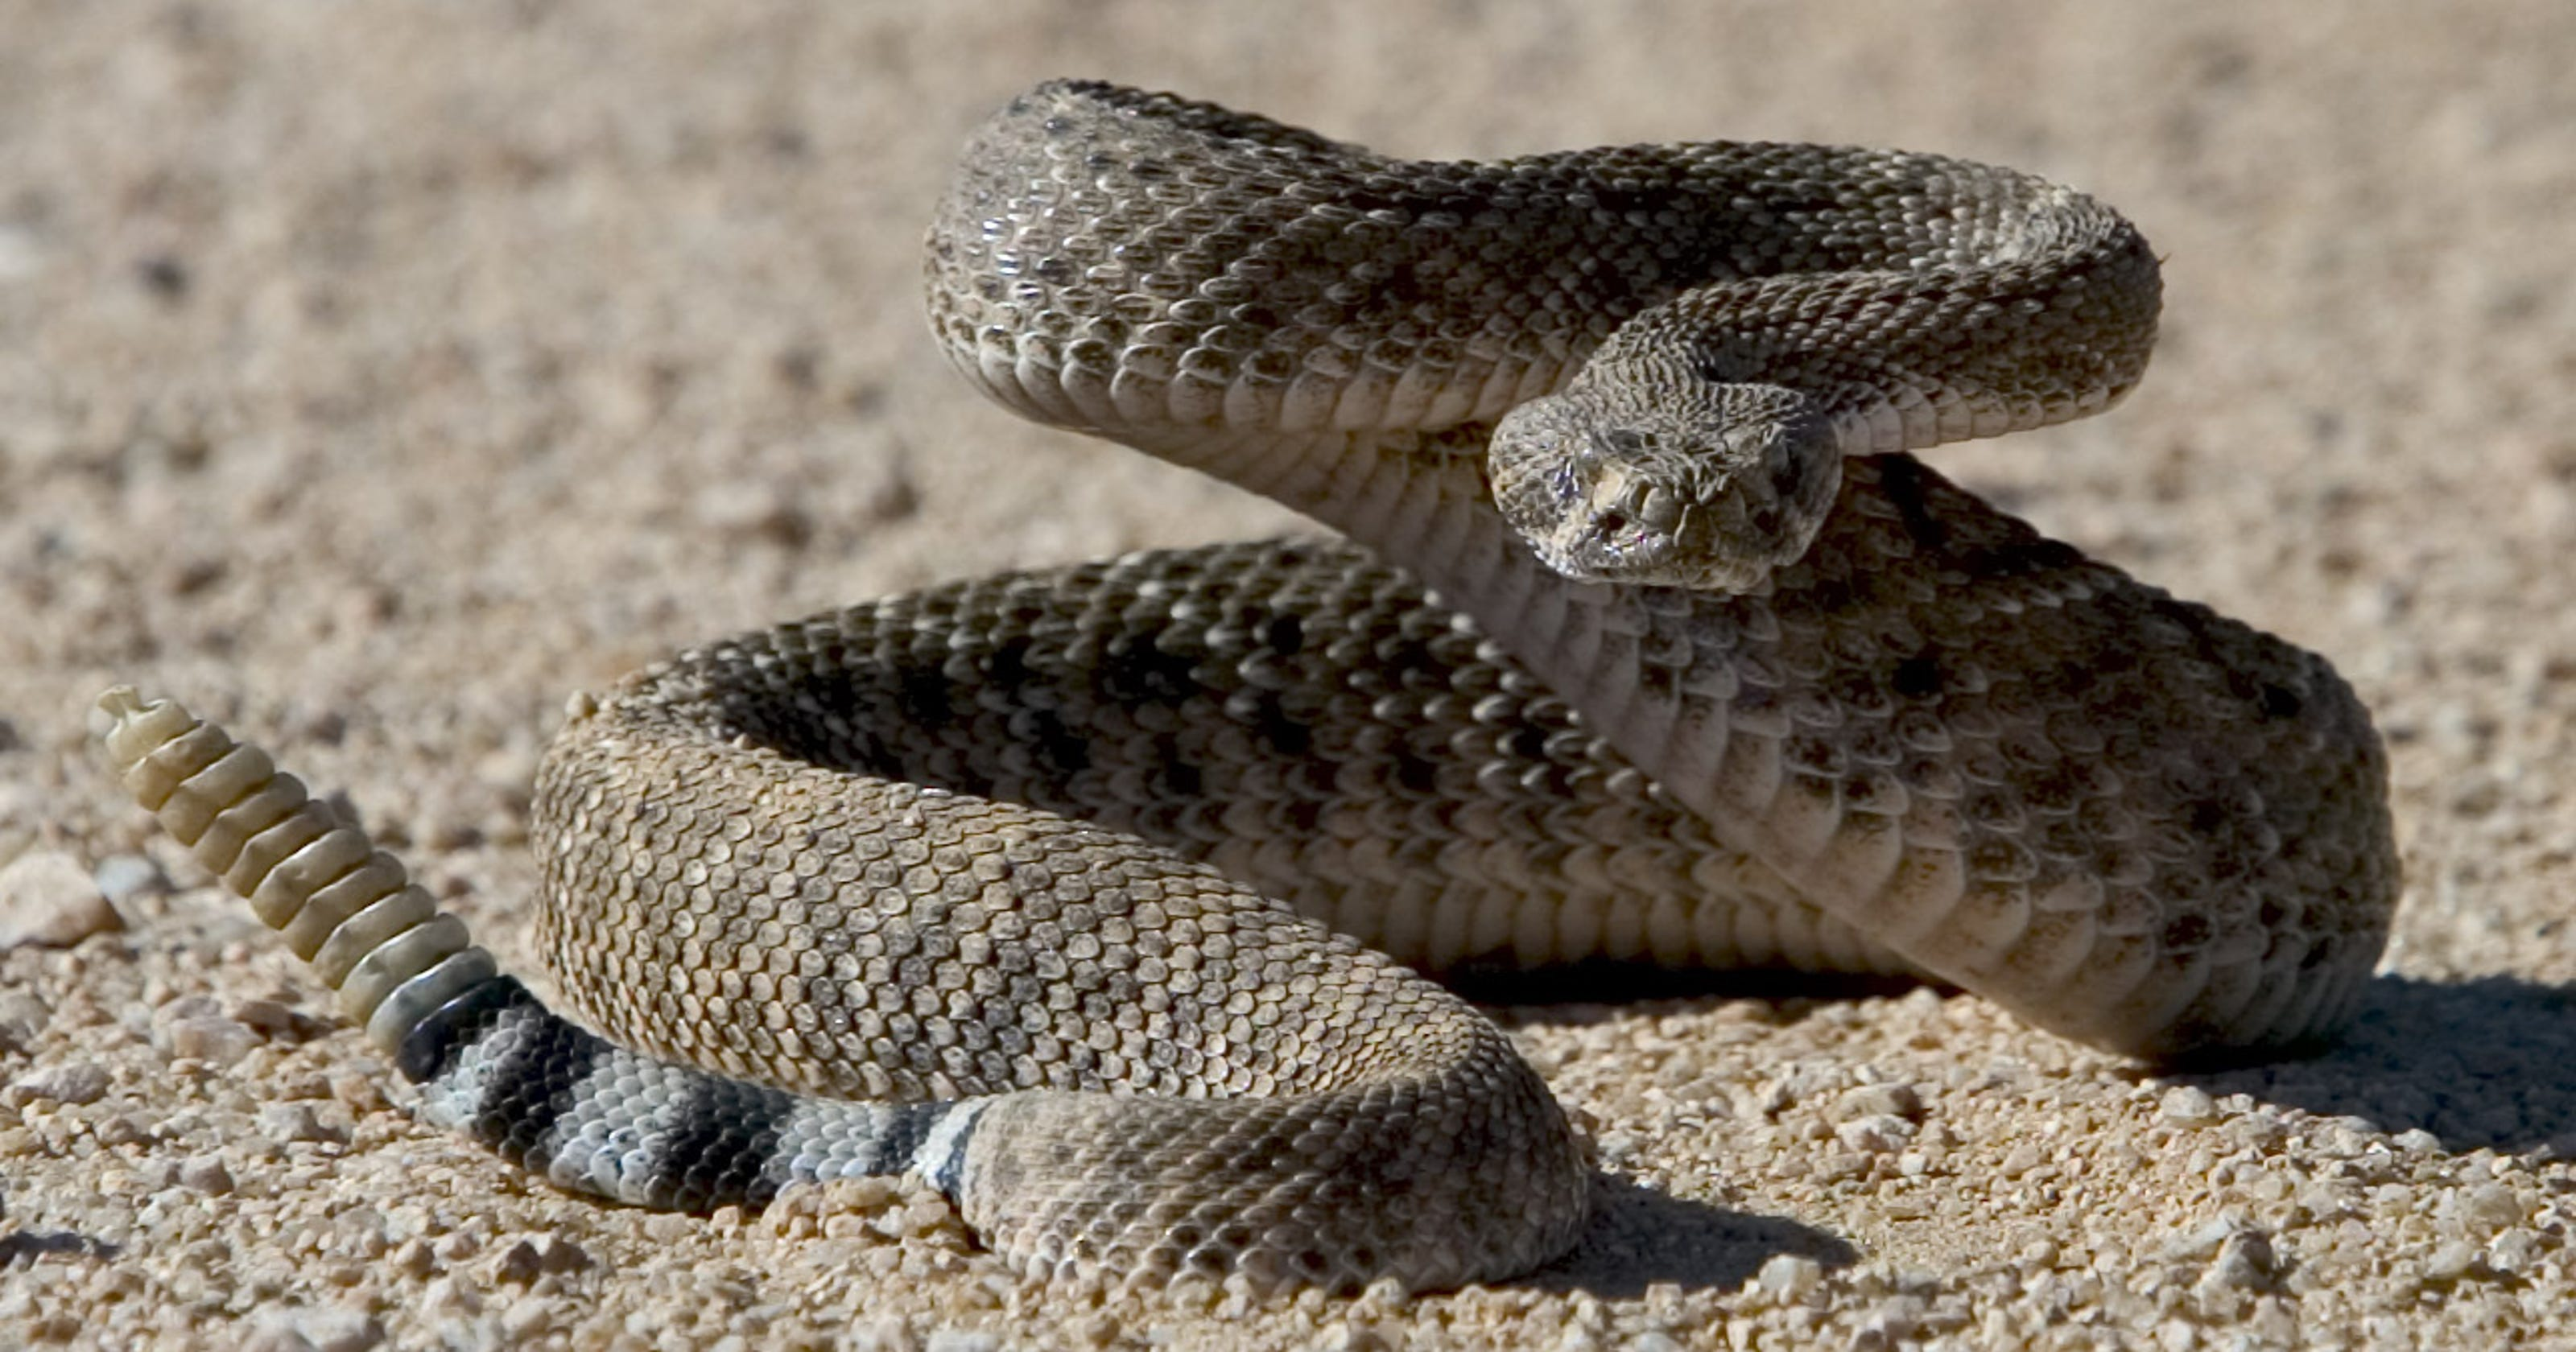 d747a35608a1 Rattlesnakes are waking up